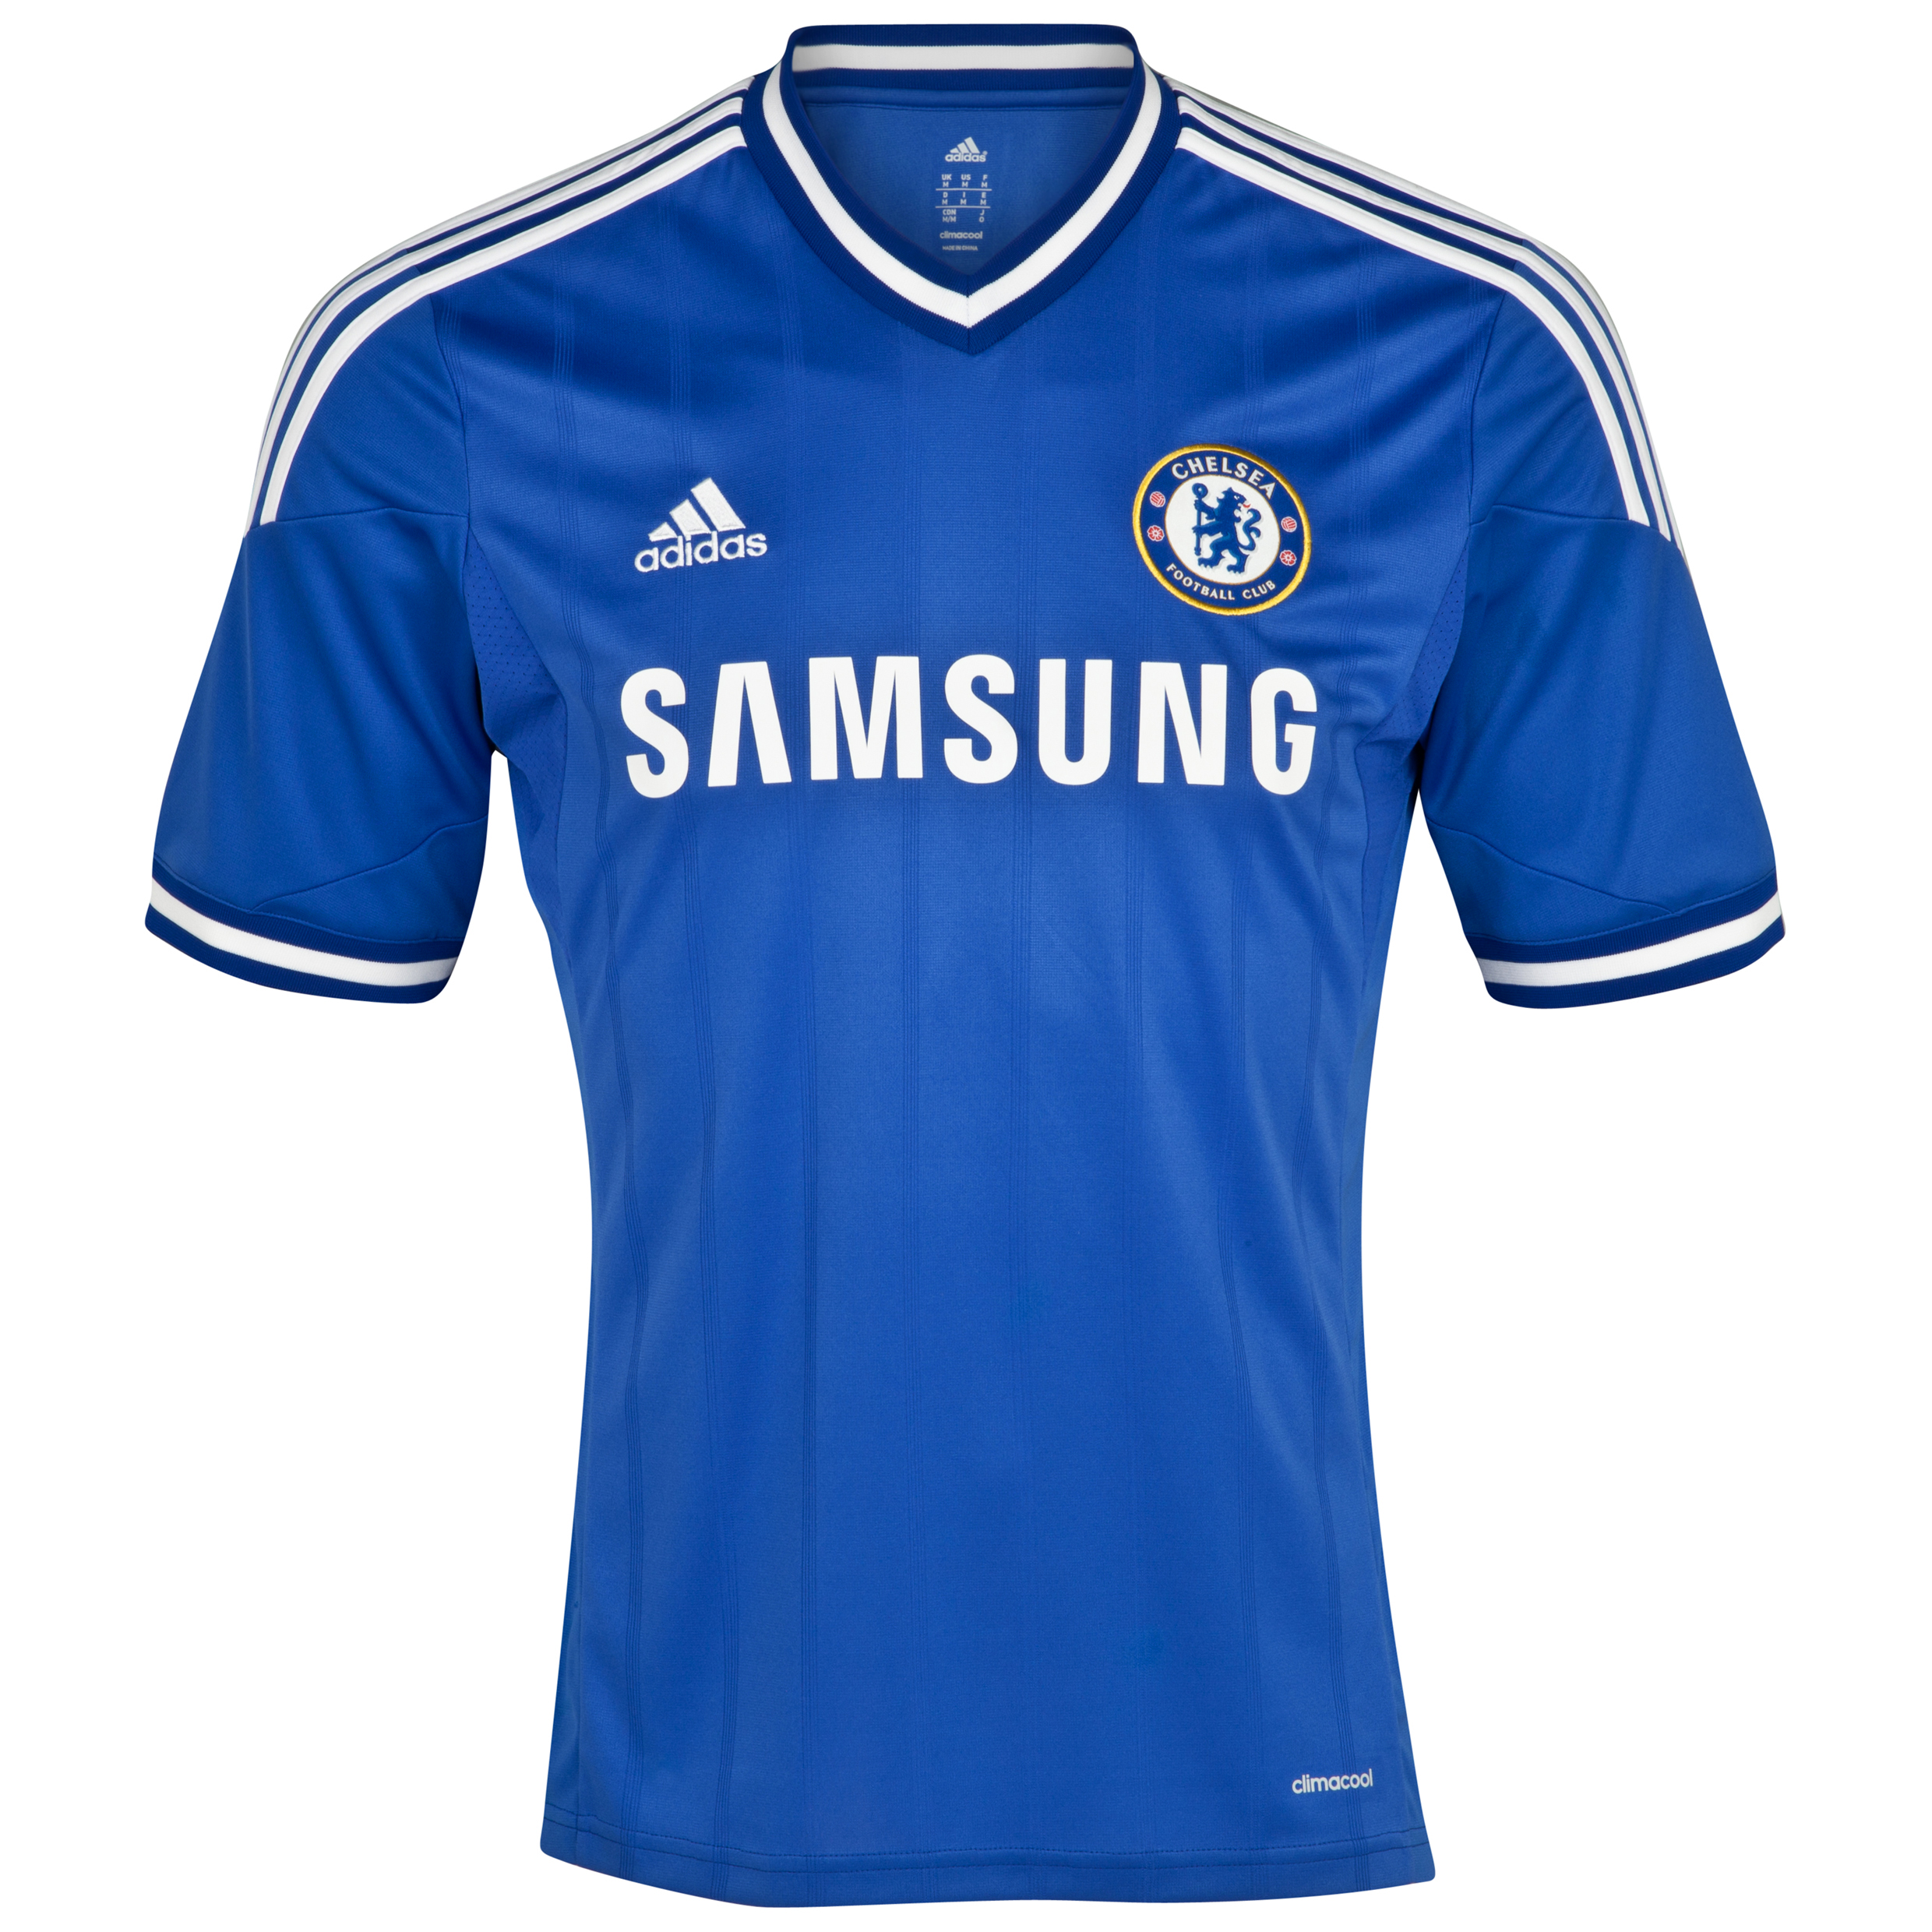 Buy Chelsea Home Kit 2013/14 Outsize